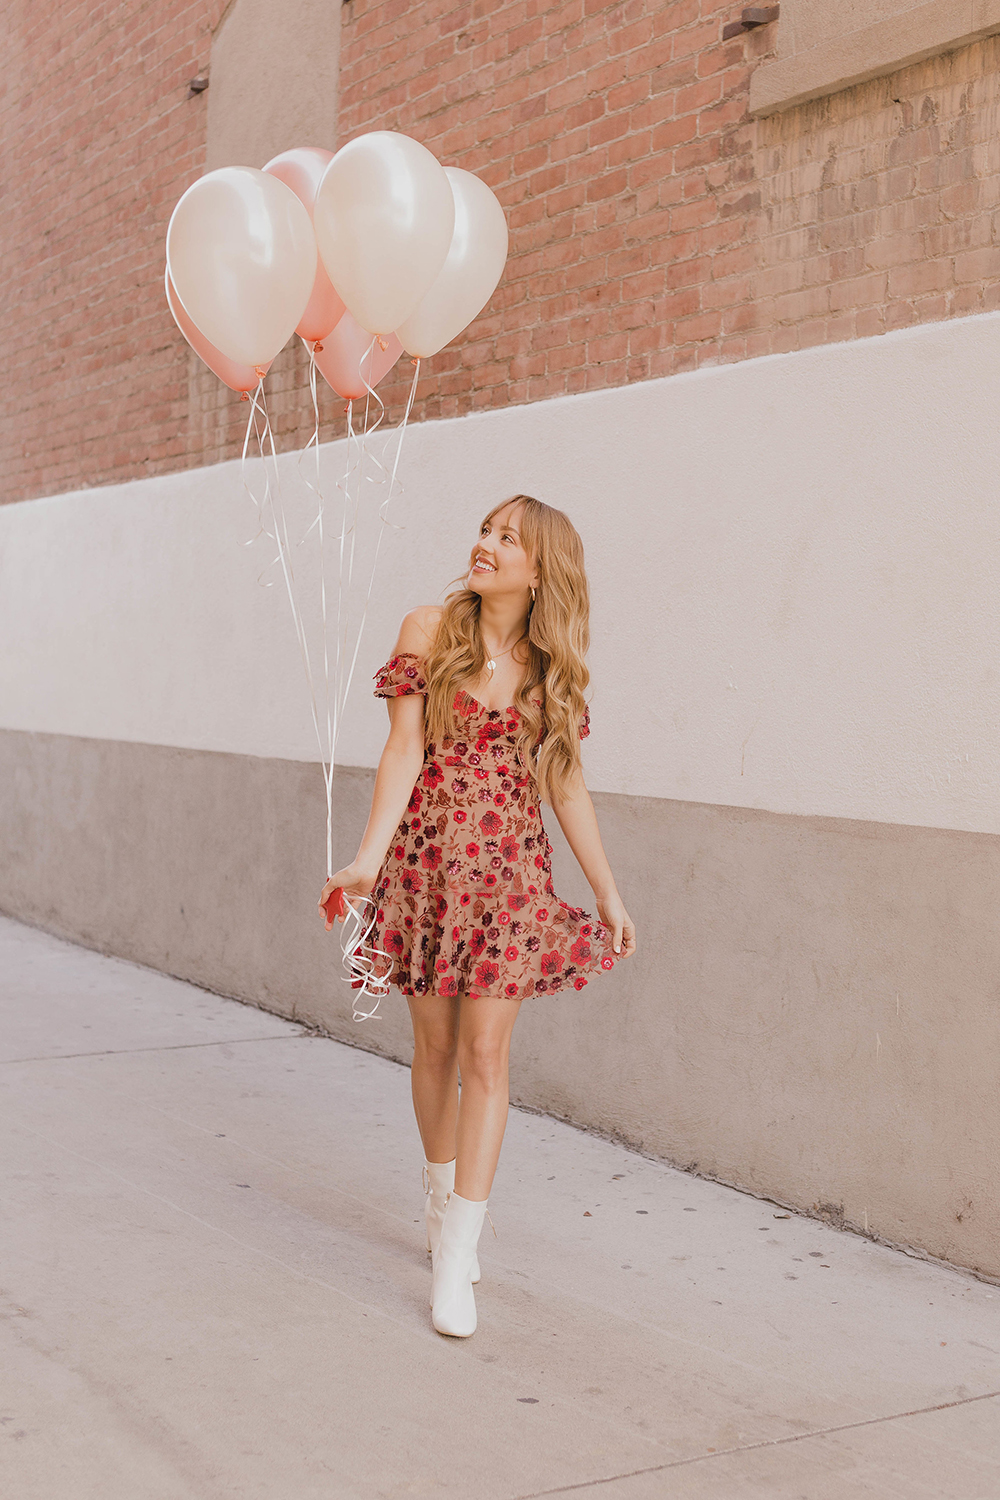 hello hannah, blog launch, hannah hagler, hannah hagler blog, vegan blogger, vegan blog, cruelty-free blog, cruelty-free blogger, for love and lemons amelia dress, how to style white booties, champagne lifestyle blog, hello hannah blog